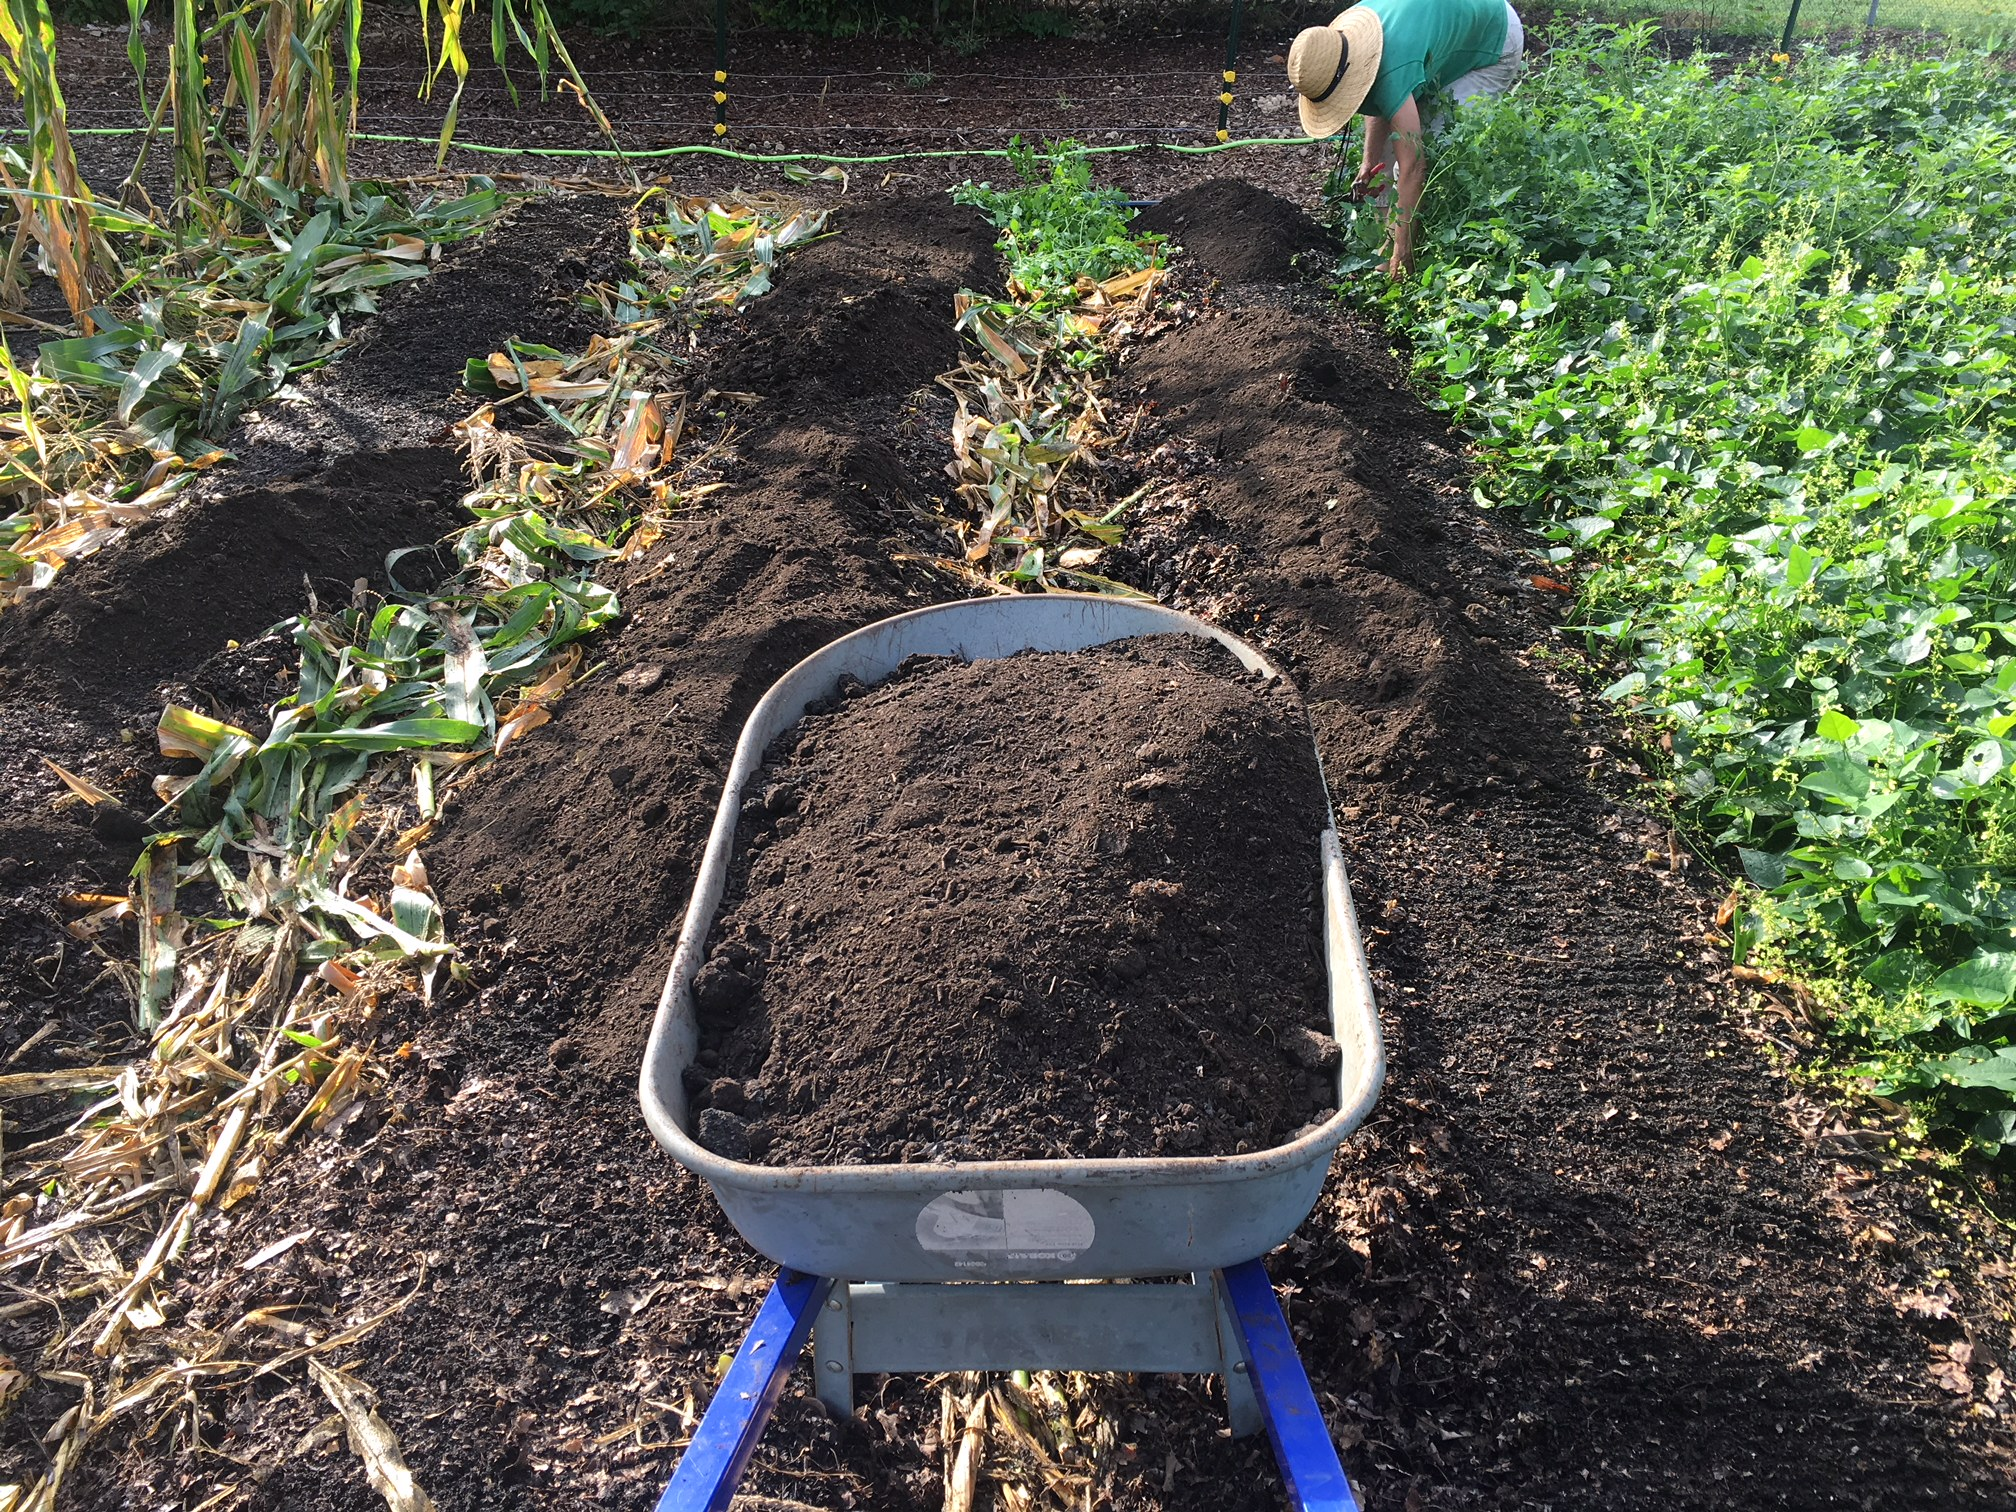 Compost going onto rows using a no-till organic gardening and farming method.